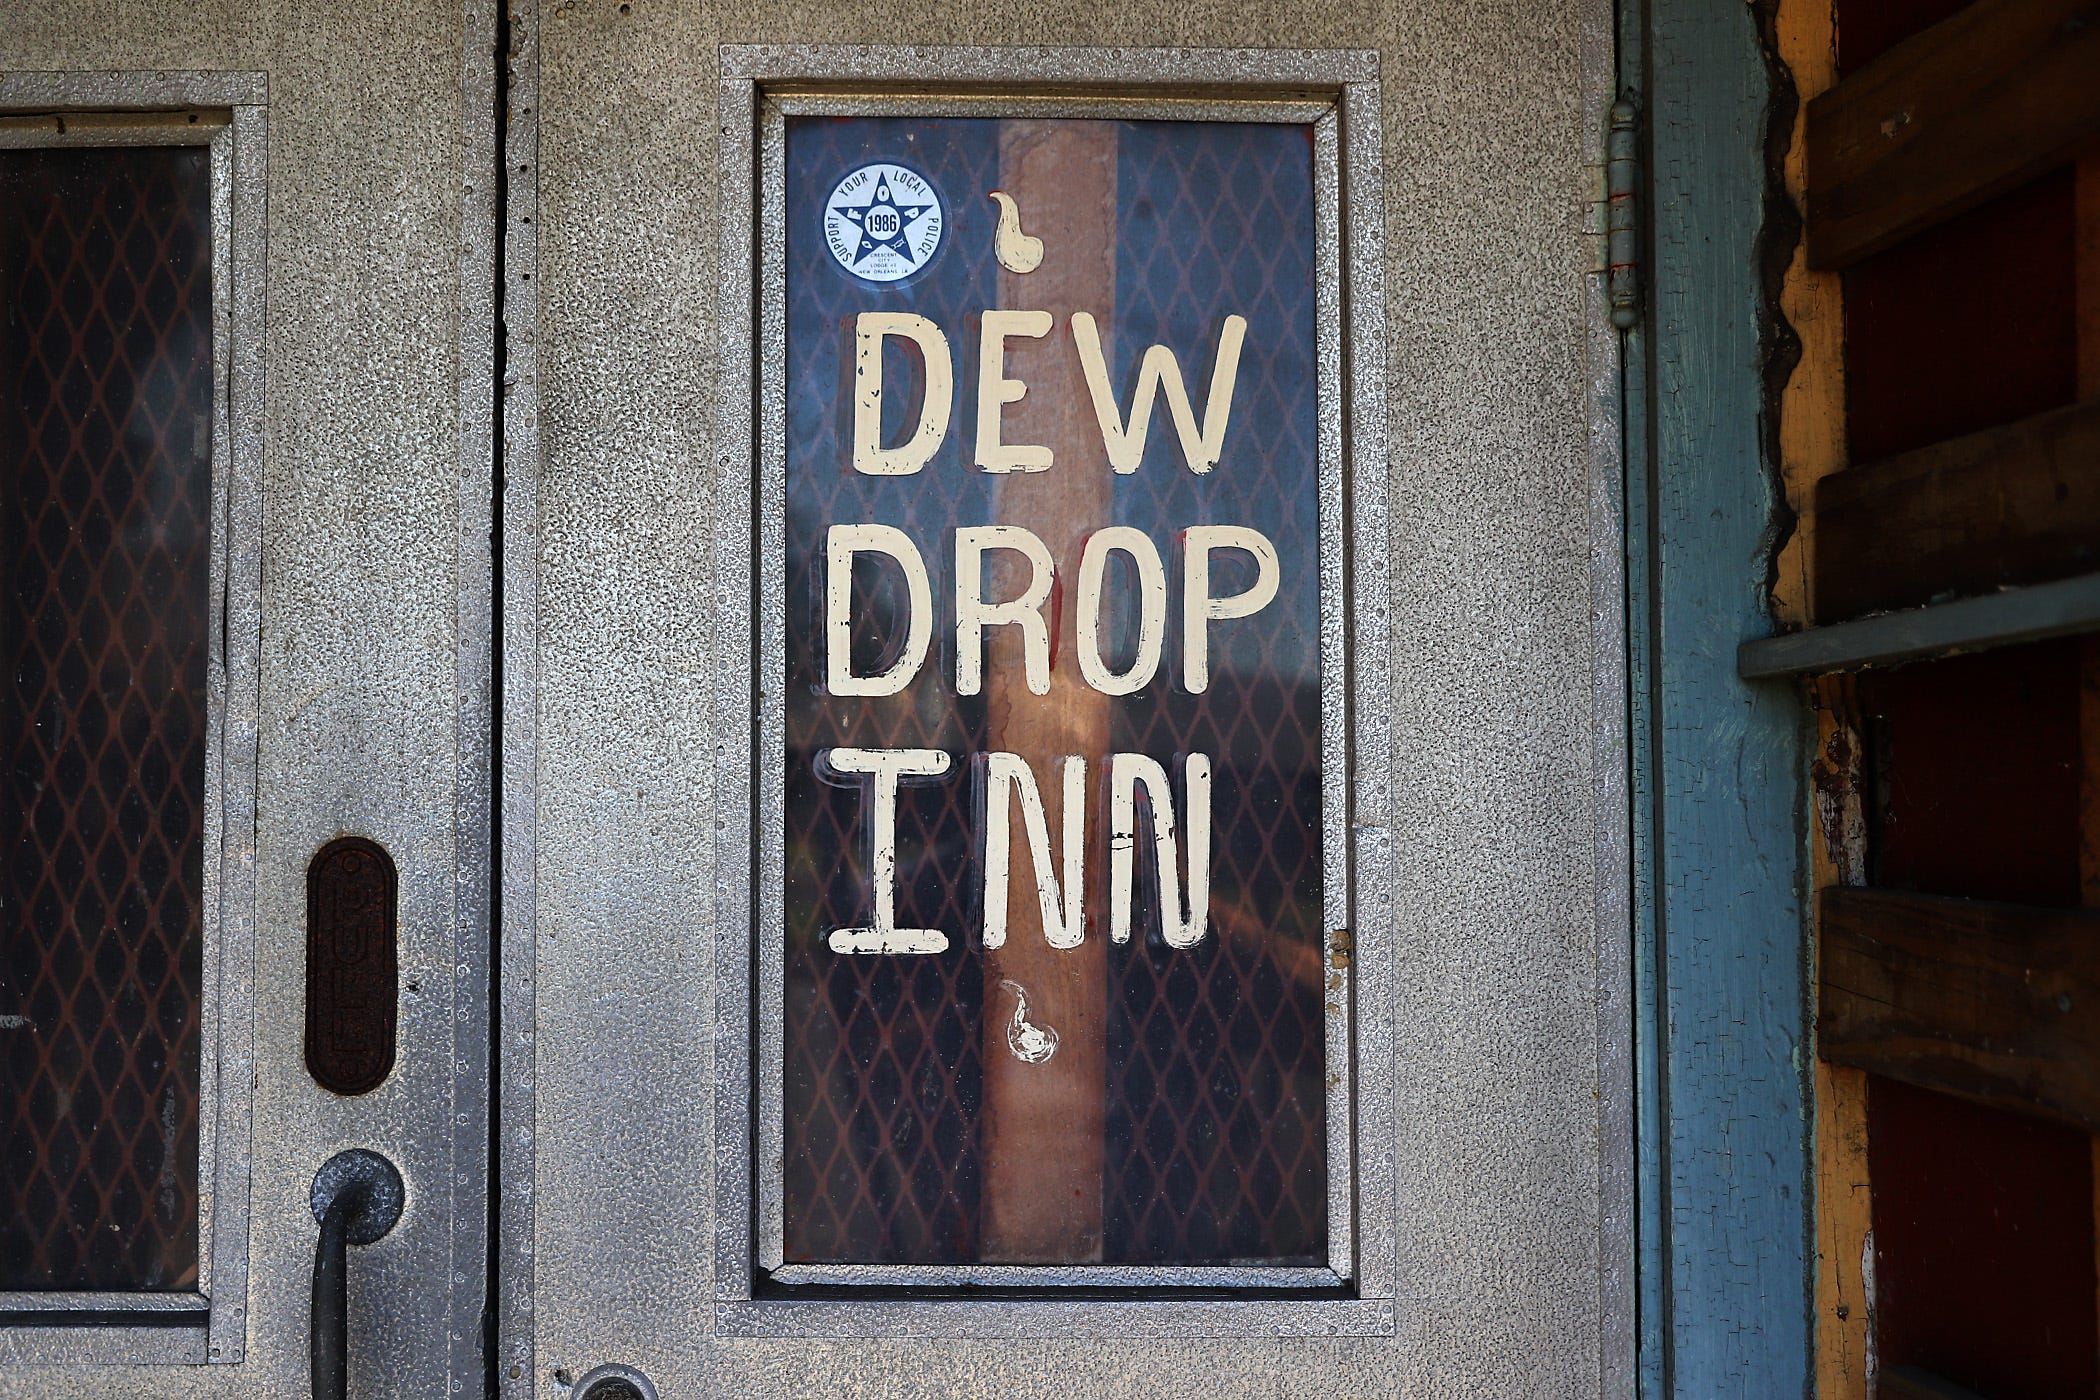 The historic hotel and nightclub the Dew Drop Inn is on LaSalle Street in New Orleans.